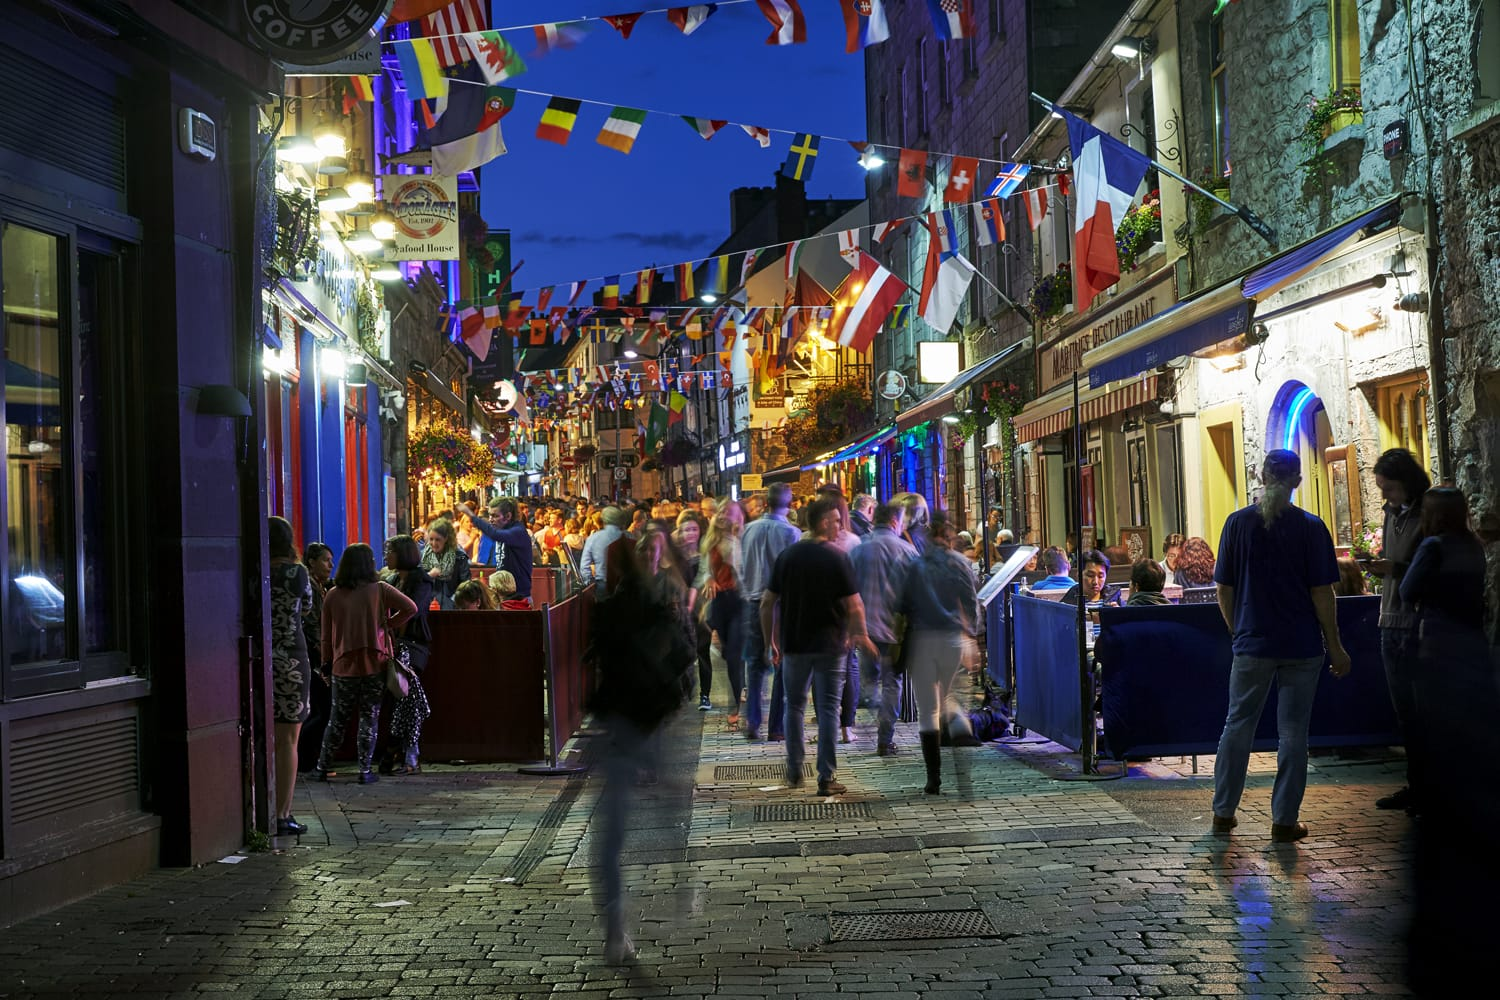 Vibrant cafe and bar culture in the city centre of Galway illuminated at night